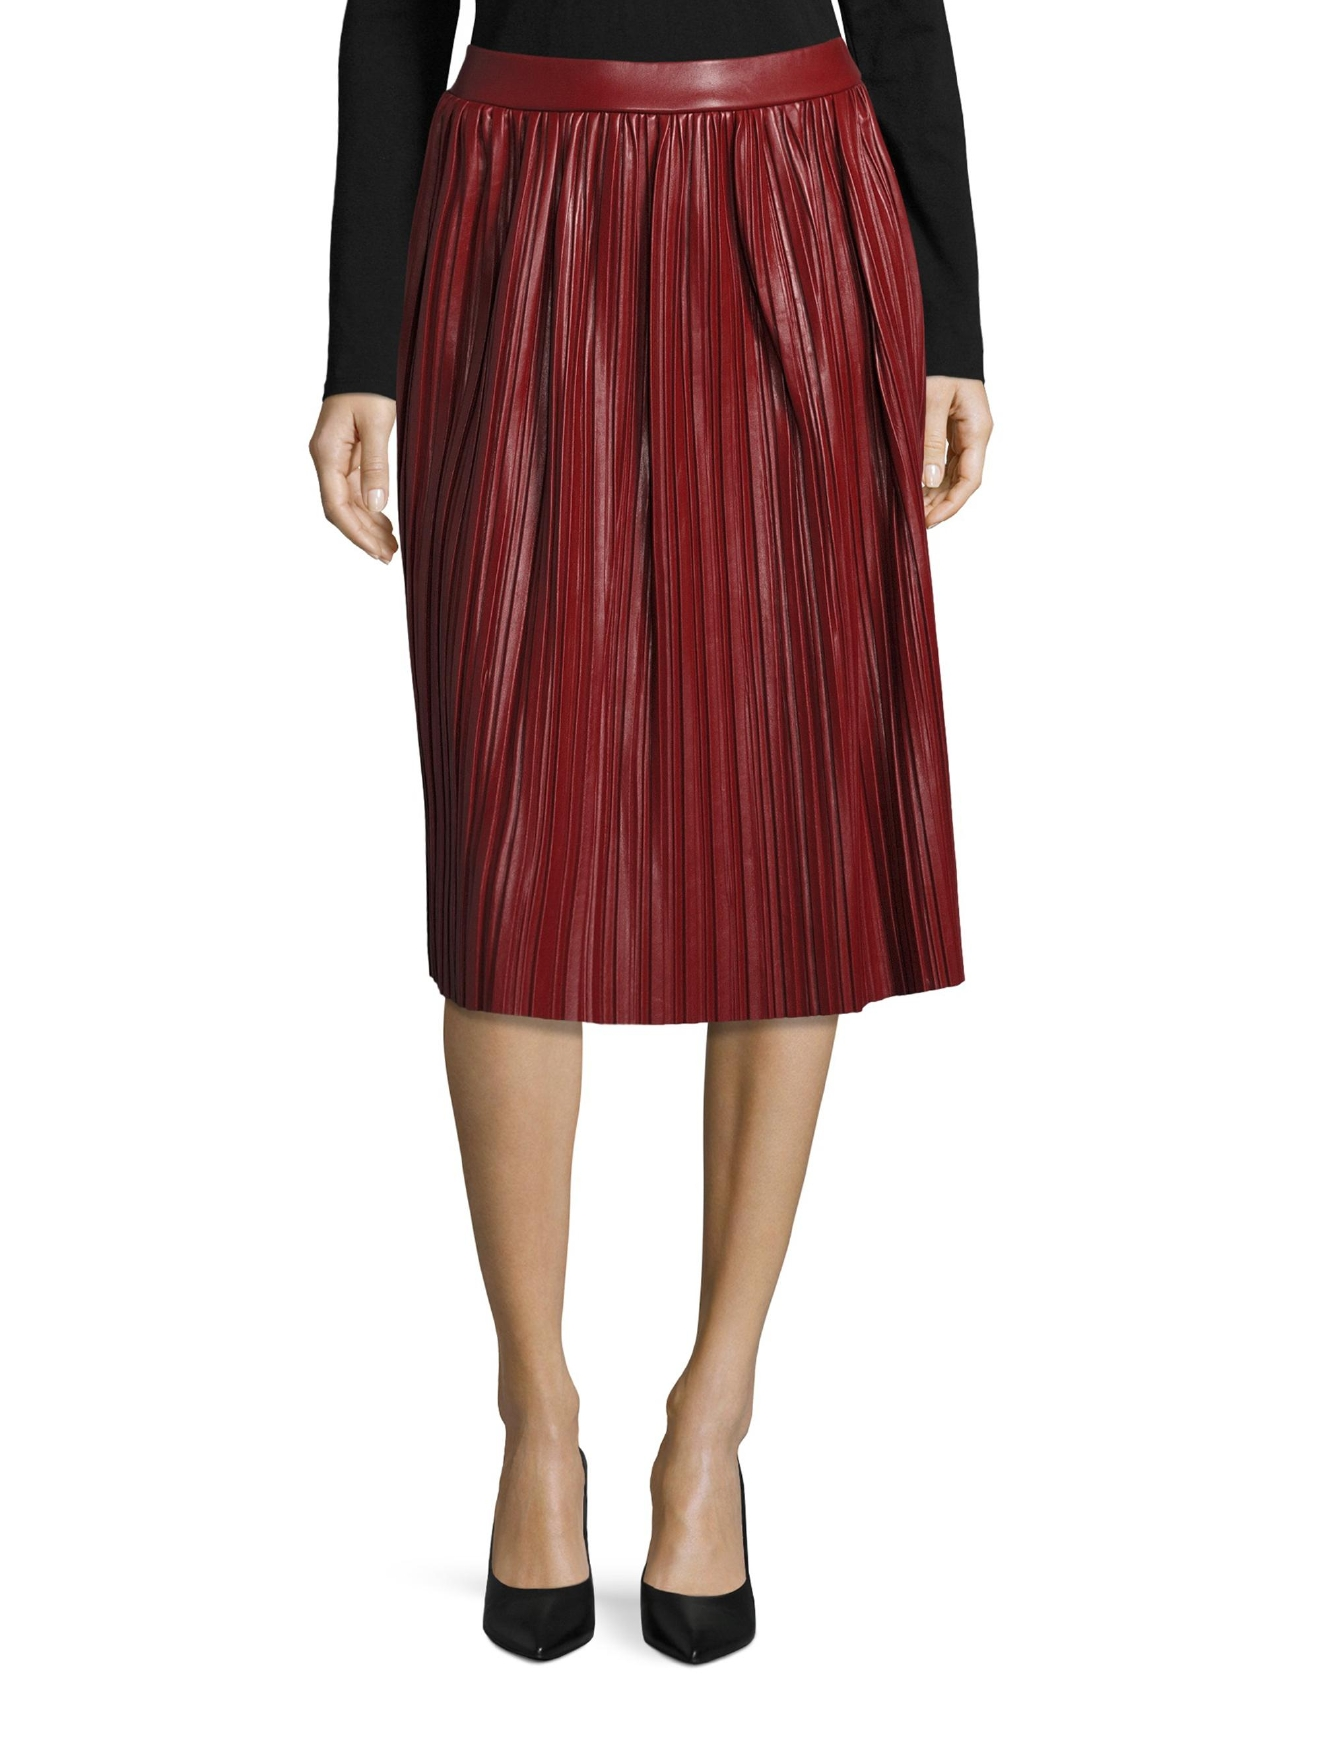 Pleated A Line Skirt  (Saks OFF 5TH)